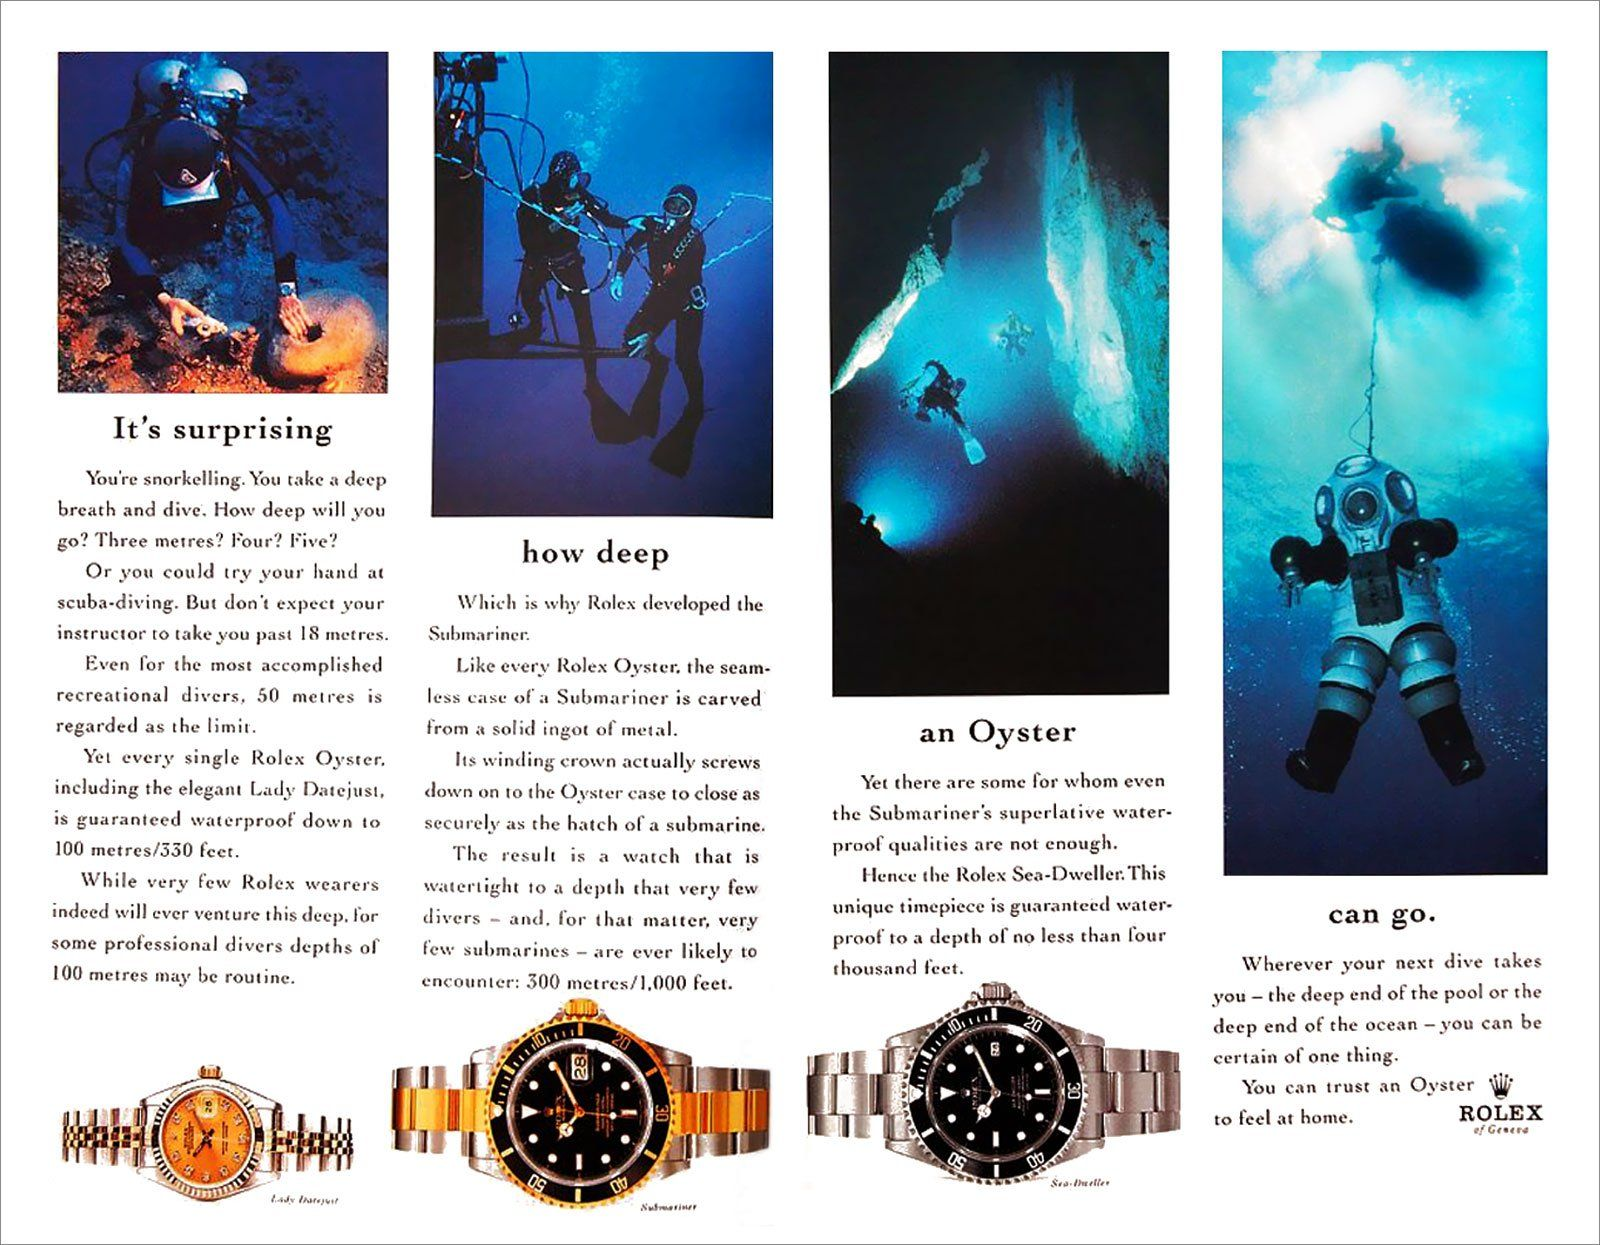 Rolex-Oyster-Ad-from-National-Geographic.jpg